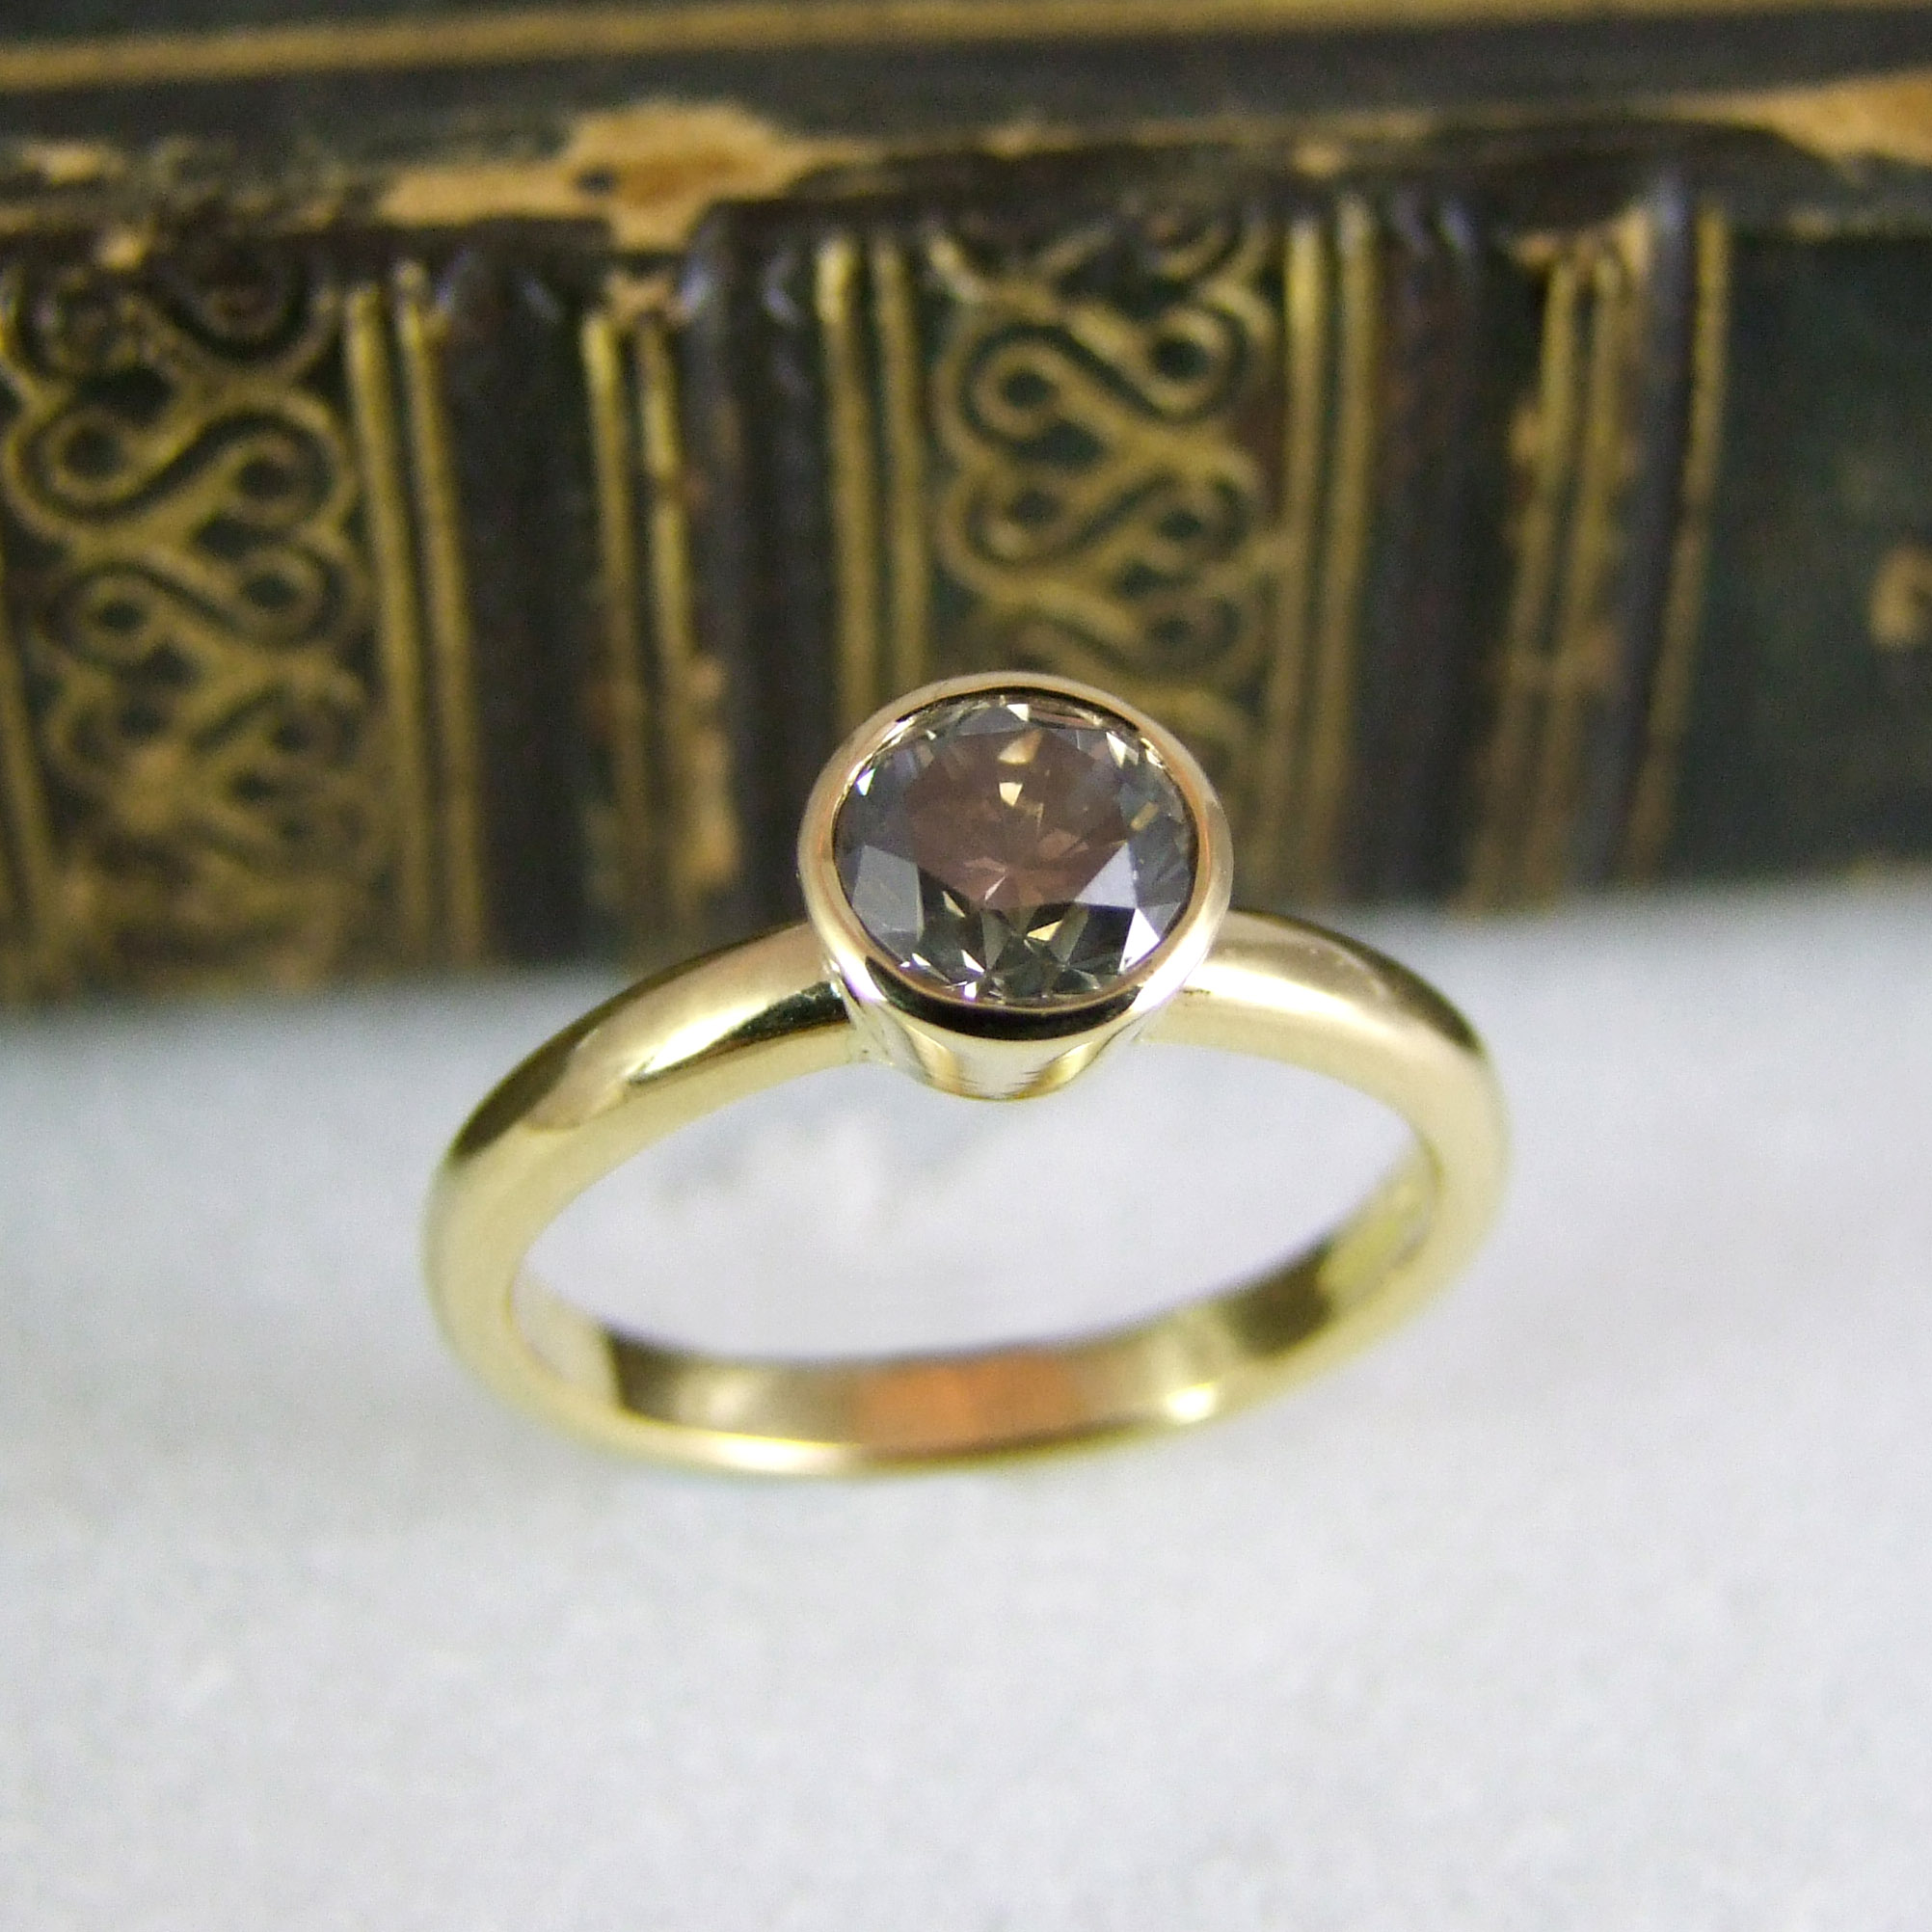 Handmade Salt And Pepper Diamond And Fairtrade Gold Ring